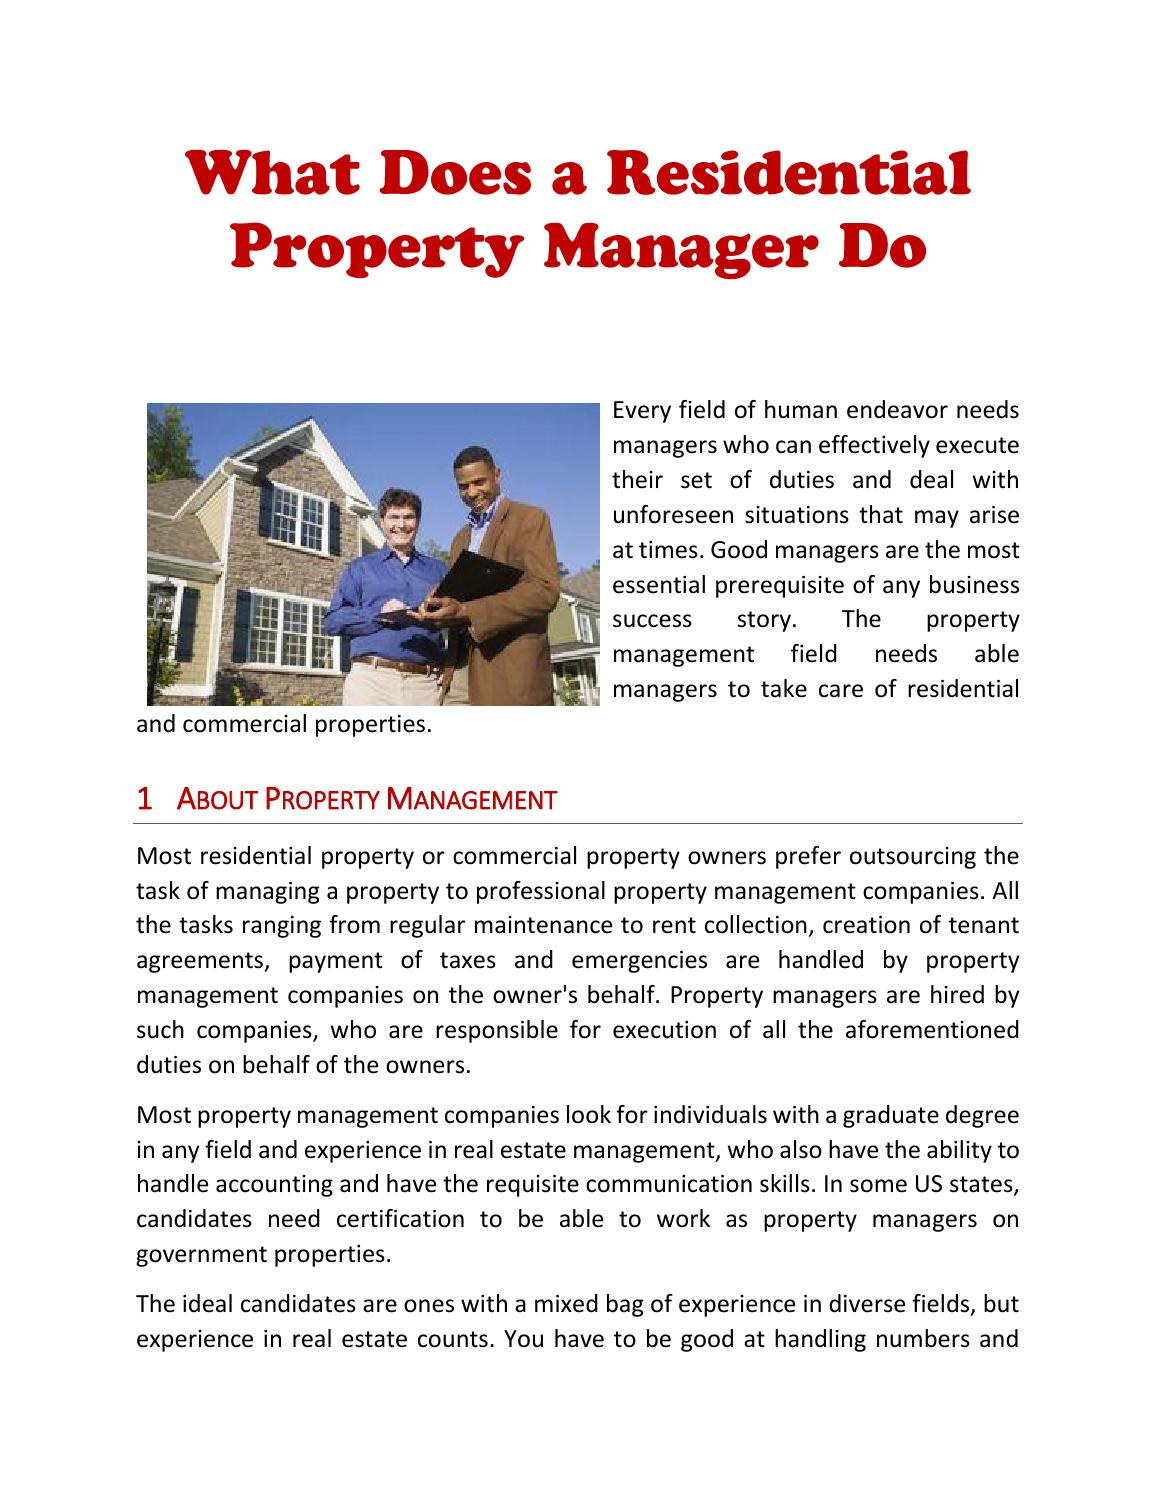 What Does A Residential Property Manager Do By Andylarings Issuu